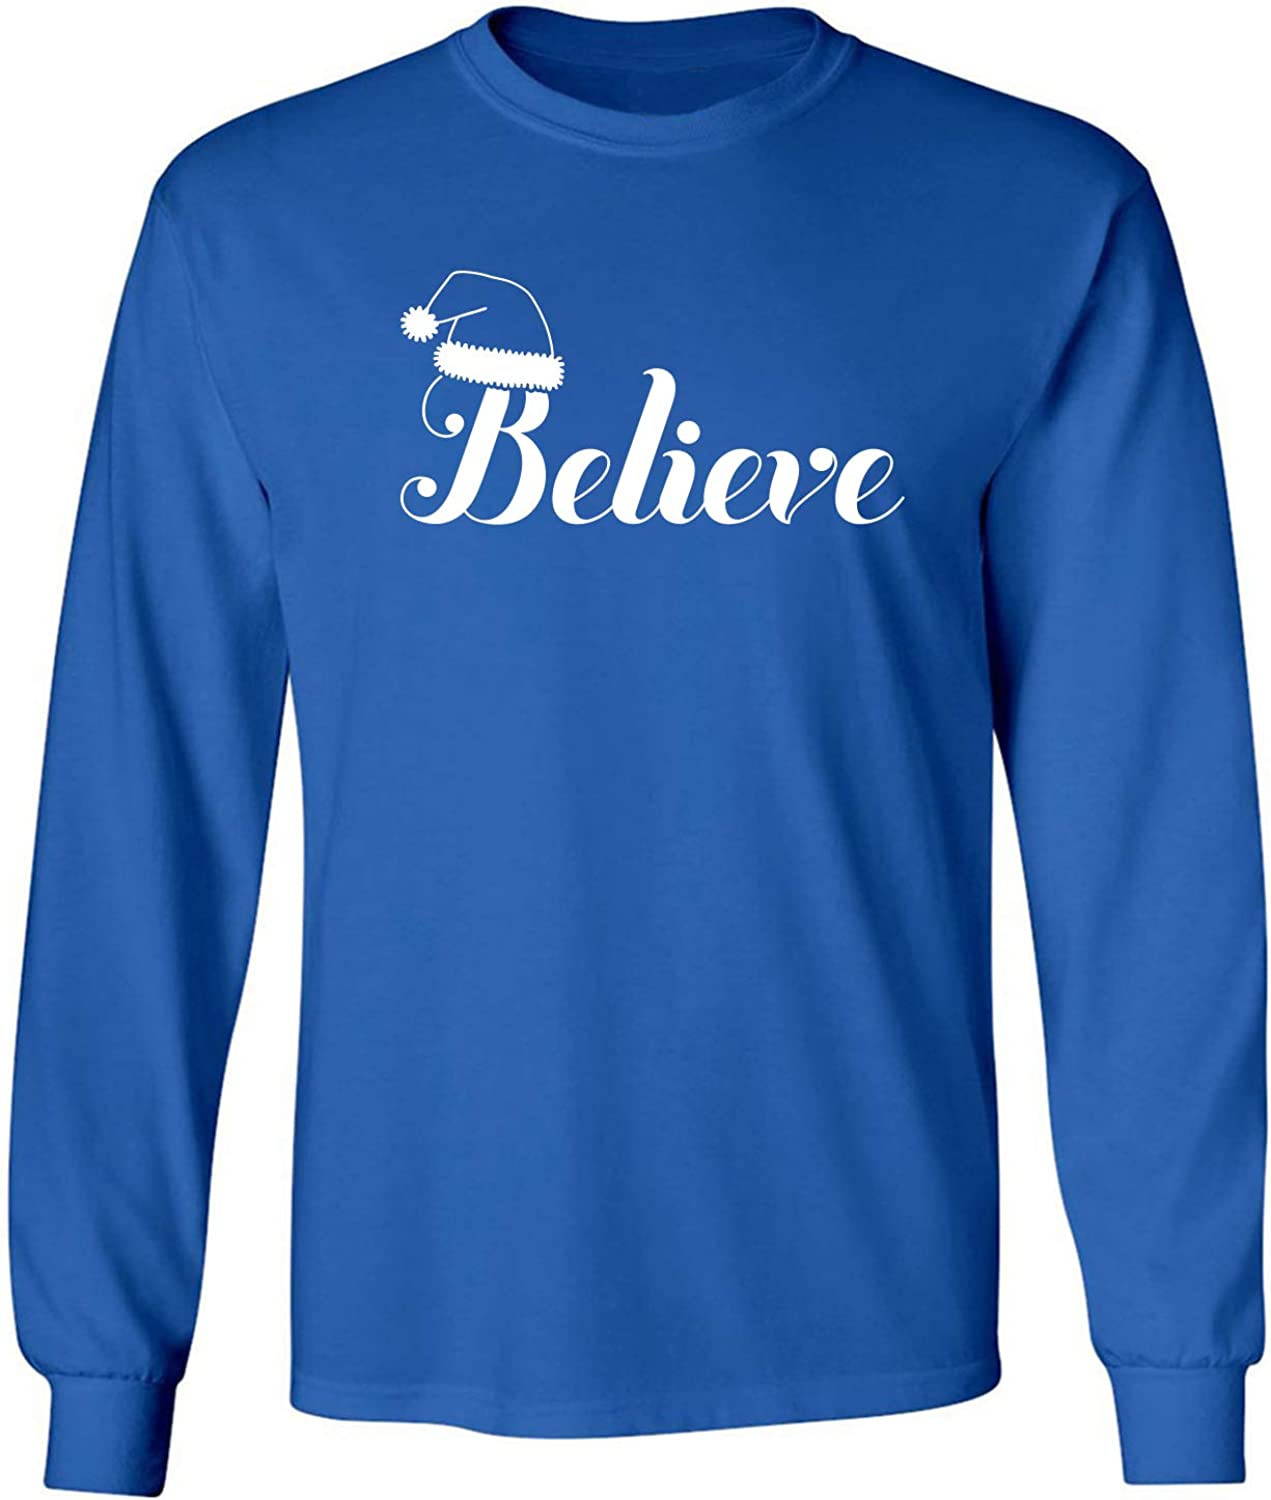 Believe Adult Long Sleeve T-Shirt in Royal - XXX-Large